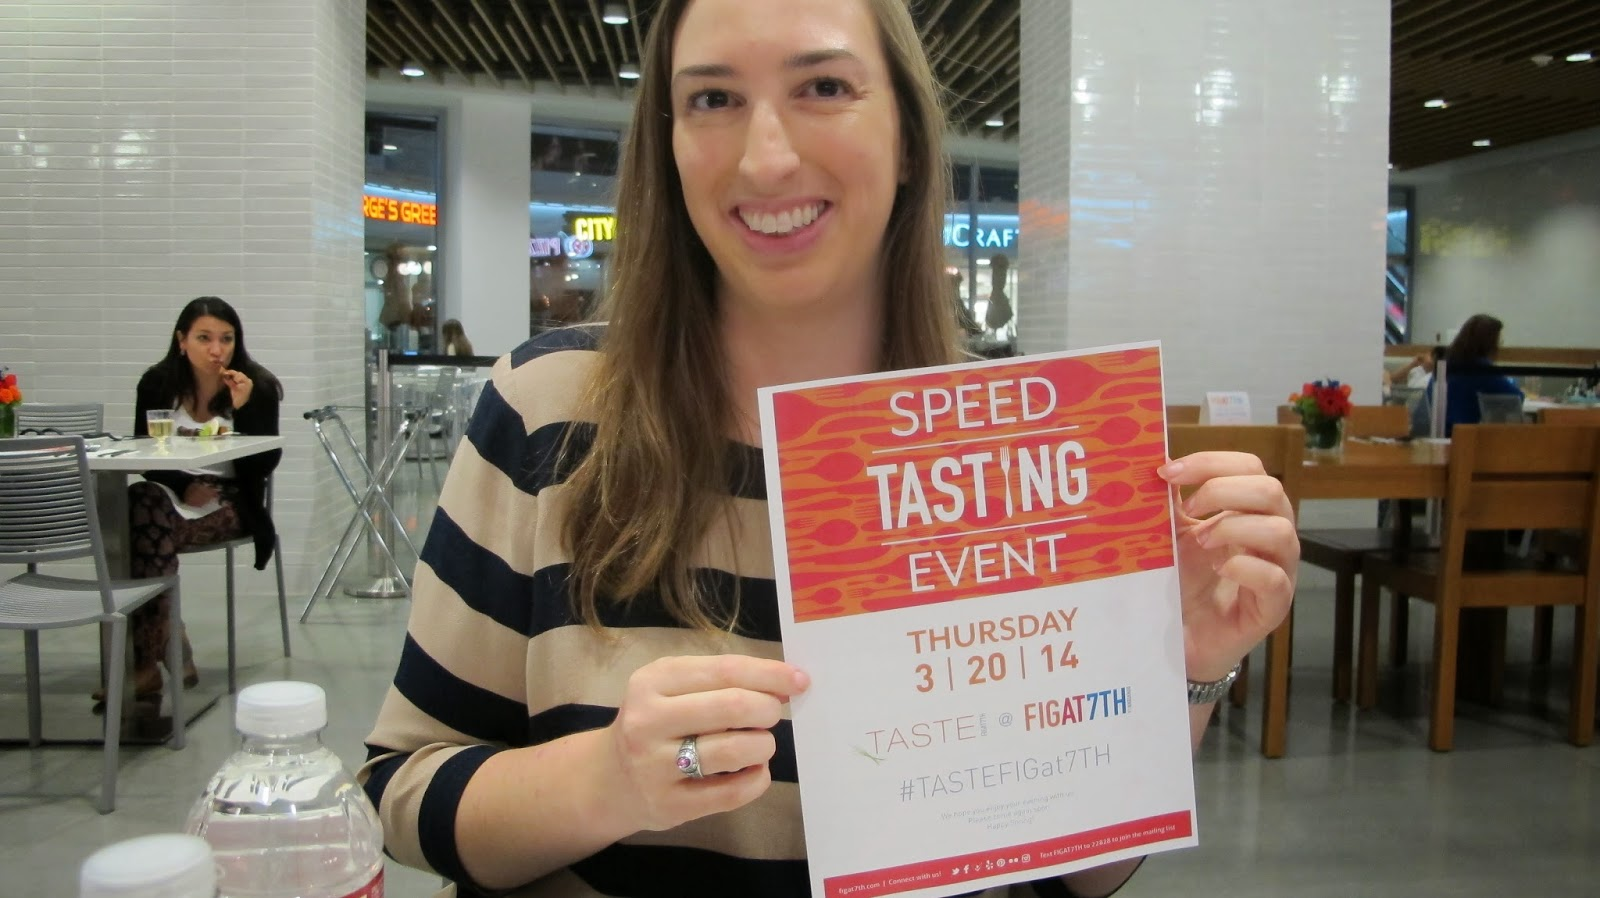 Speed Tasting at Taste FIGat7th